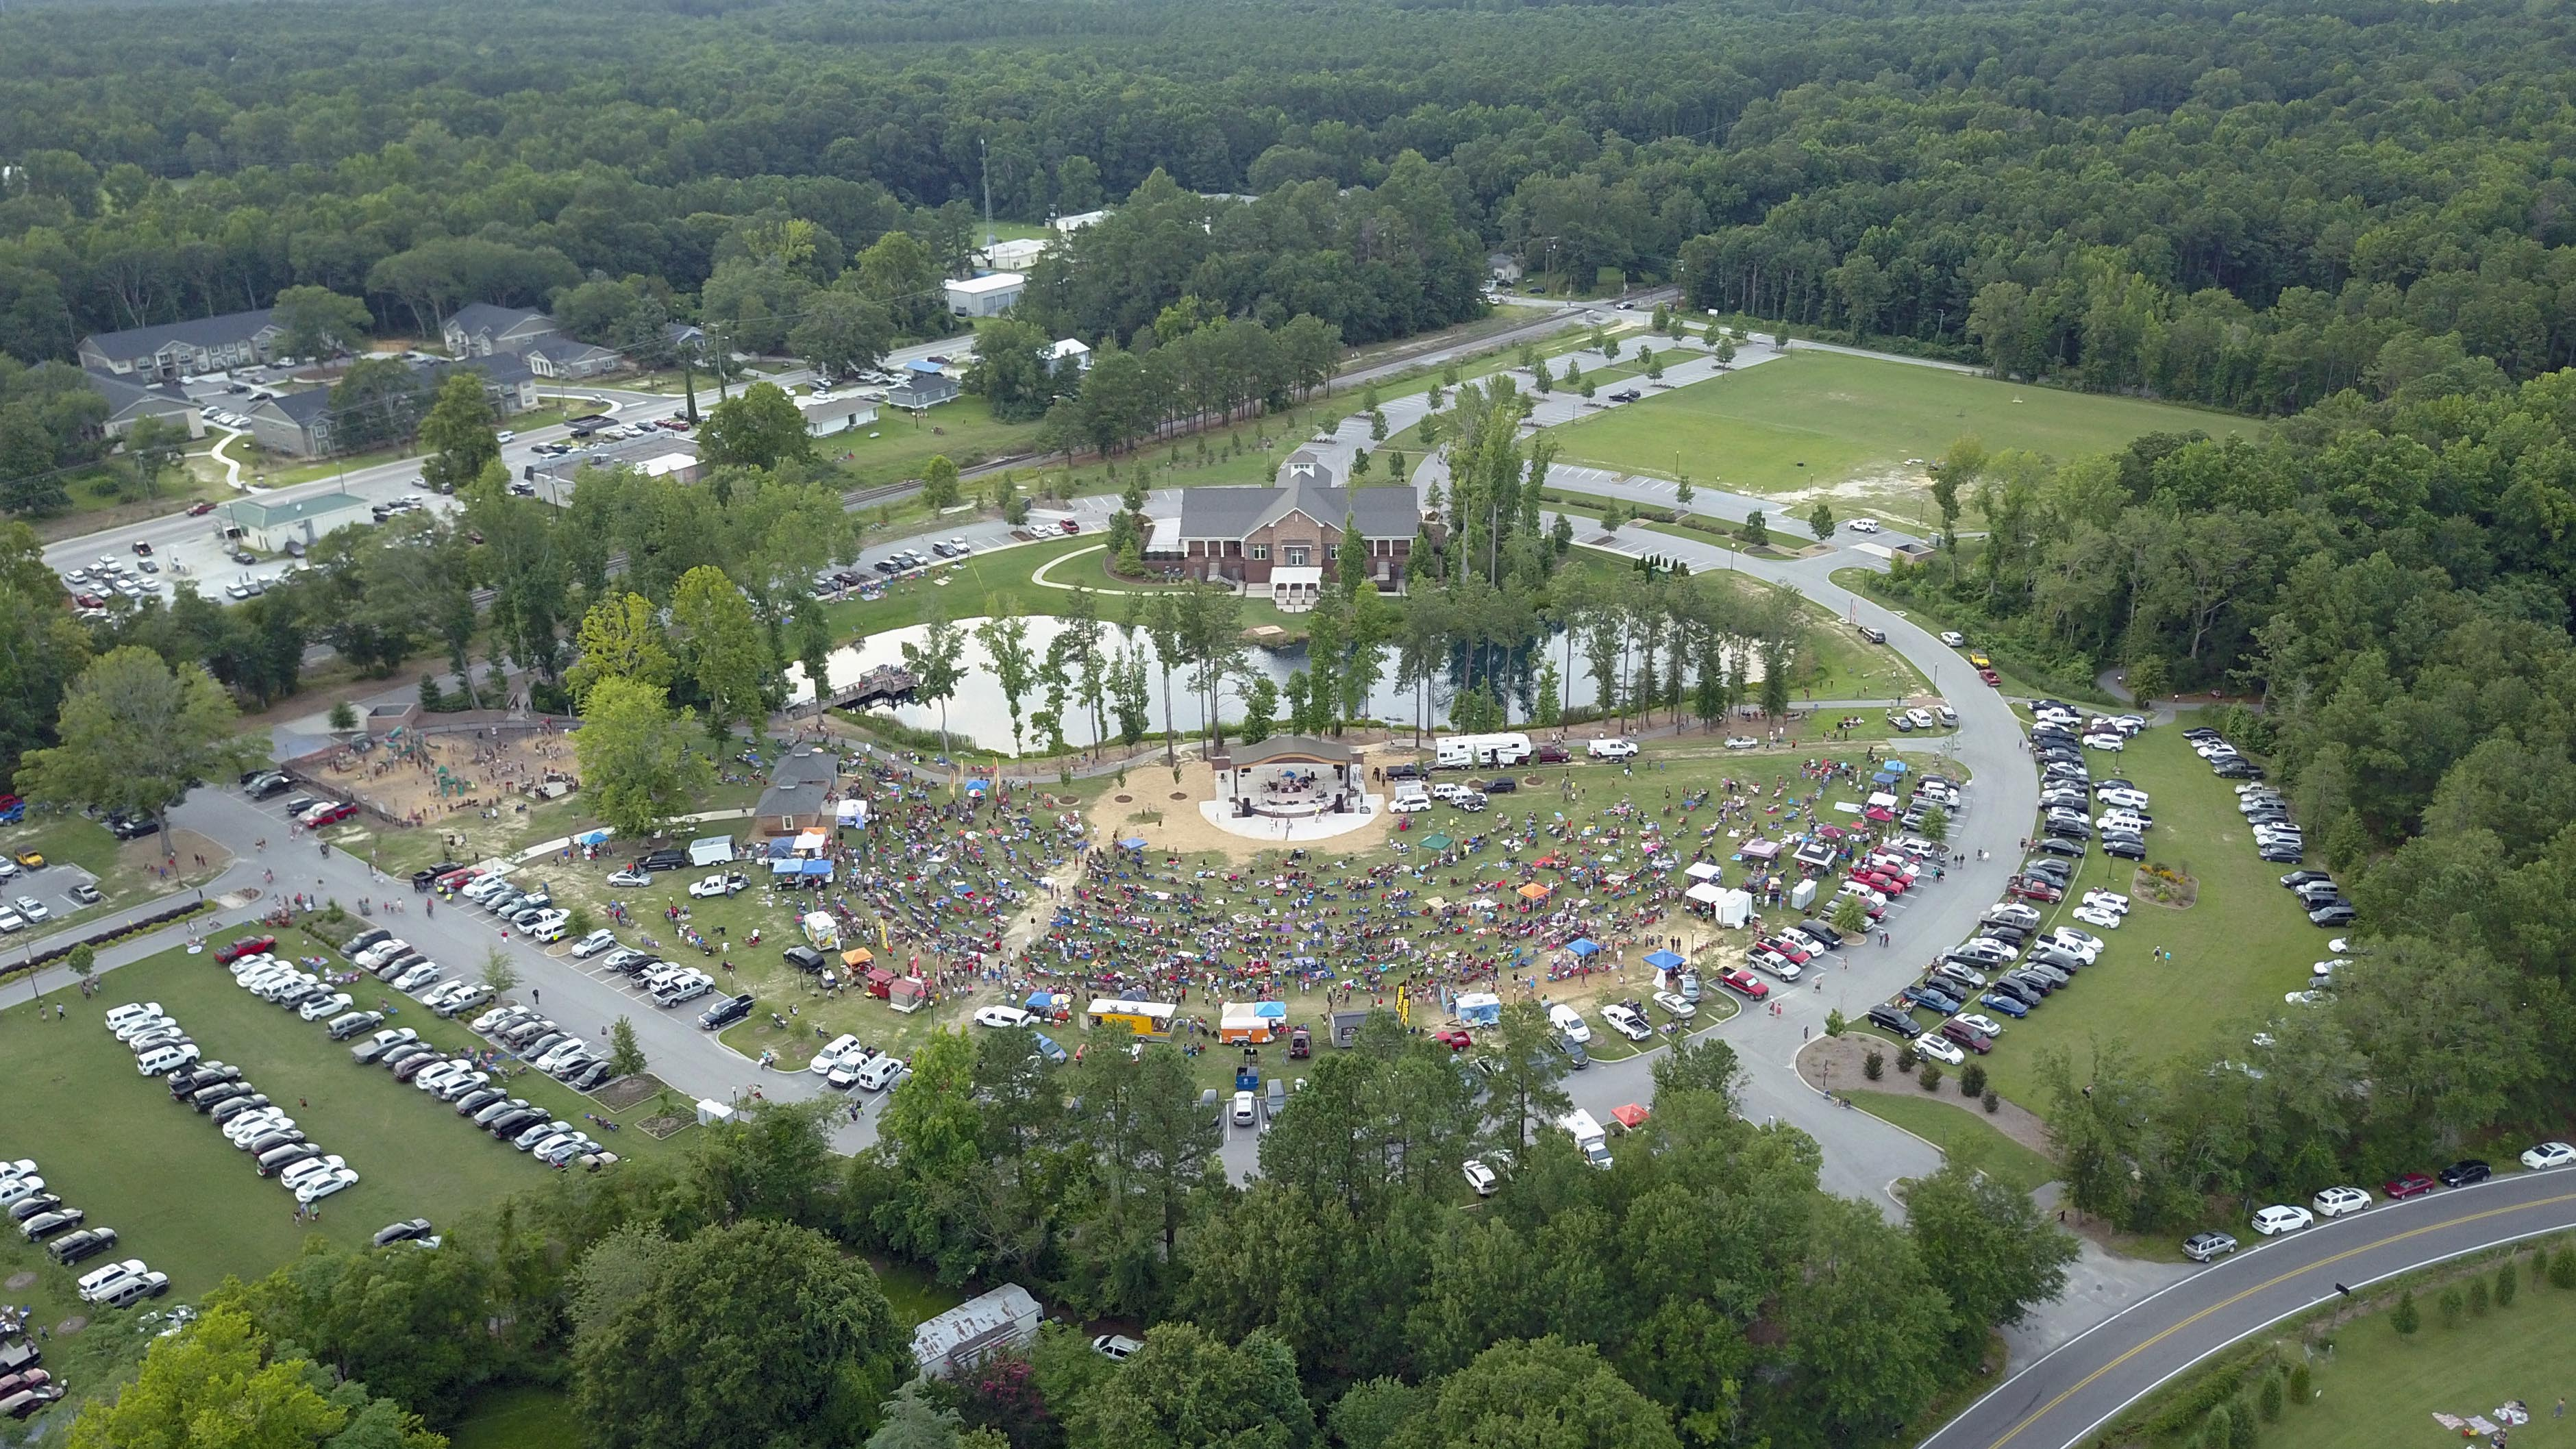 20170703-Aerial Amphitheater-1 Treetop Photography